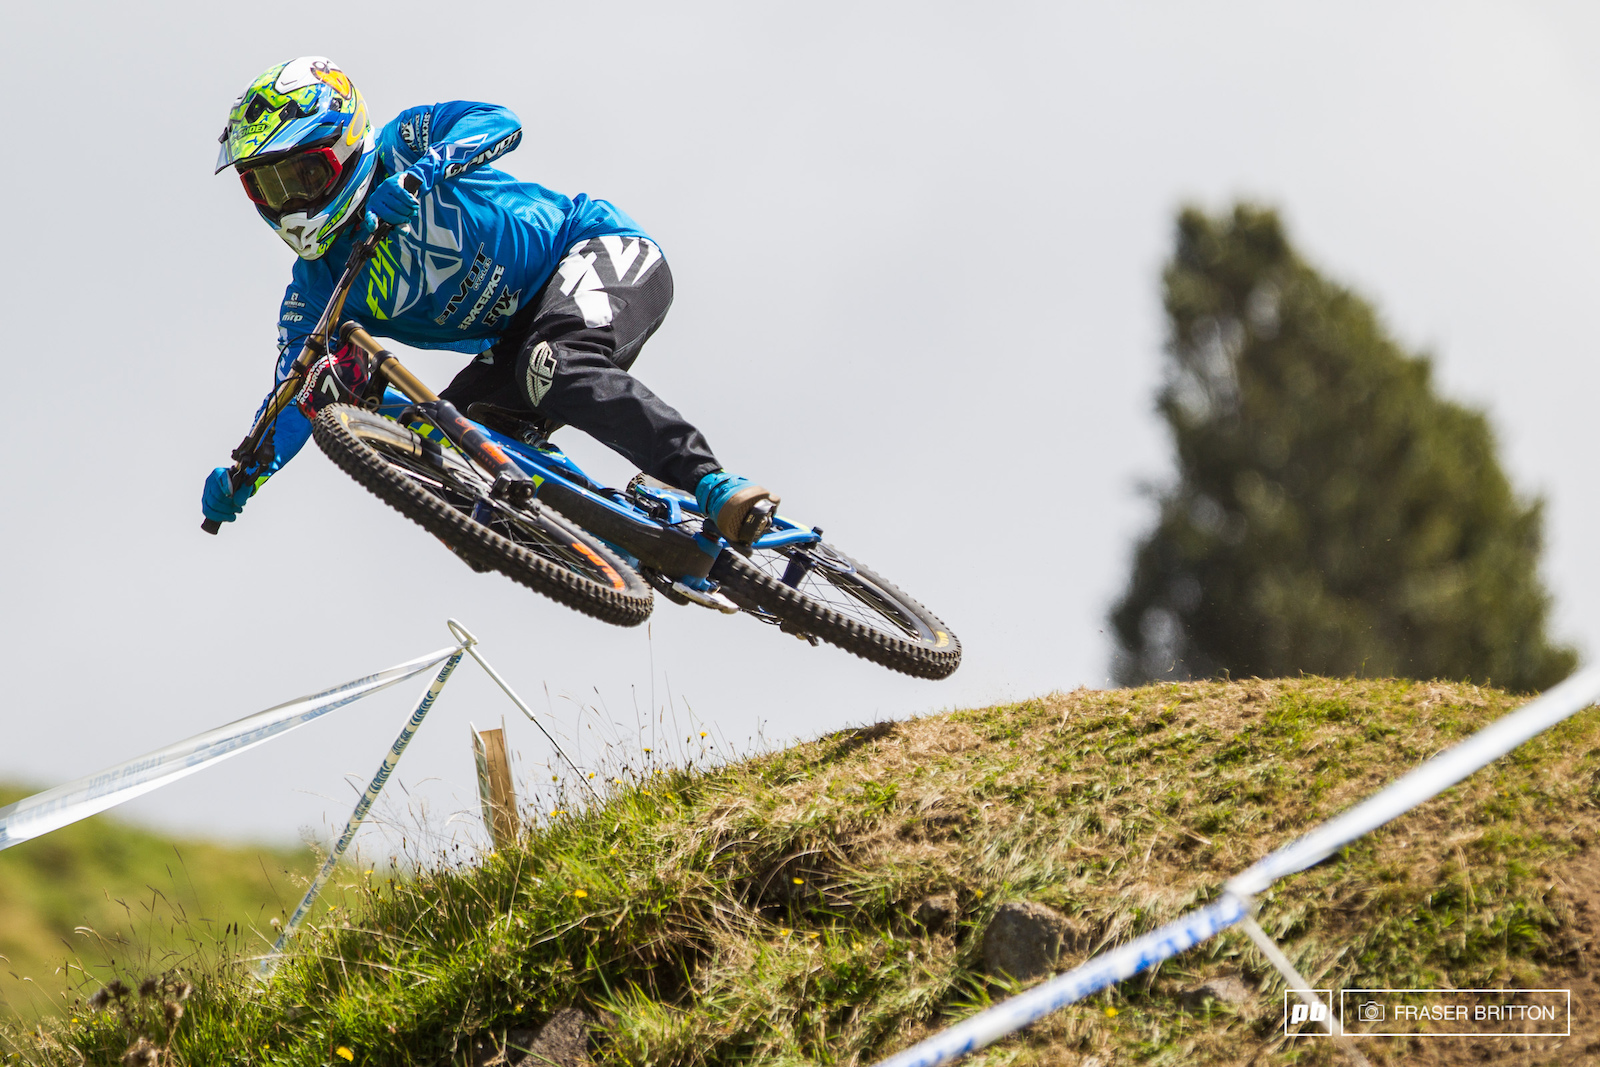 Elliot Jackson won the DH event here last year. This year he took home seventh place but had more style than the rest of the pro category combined. Staying low over the grassy knoll is a Jackson speciality.